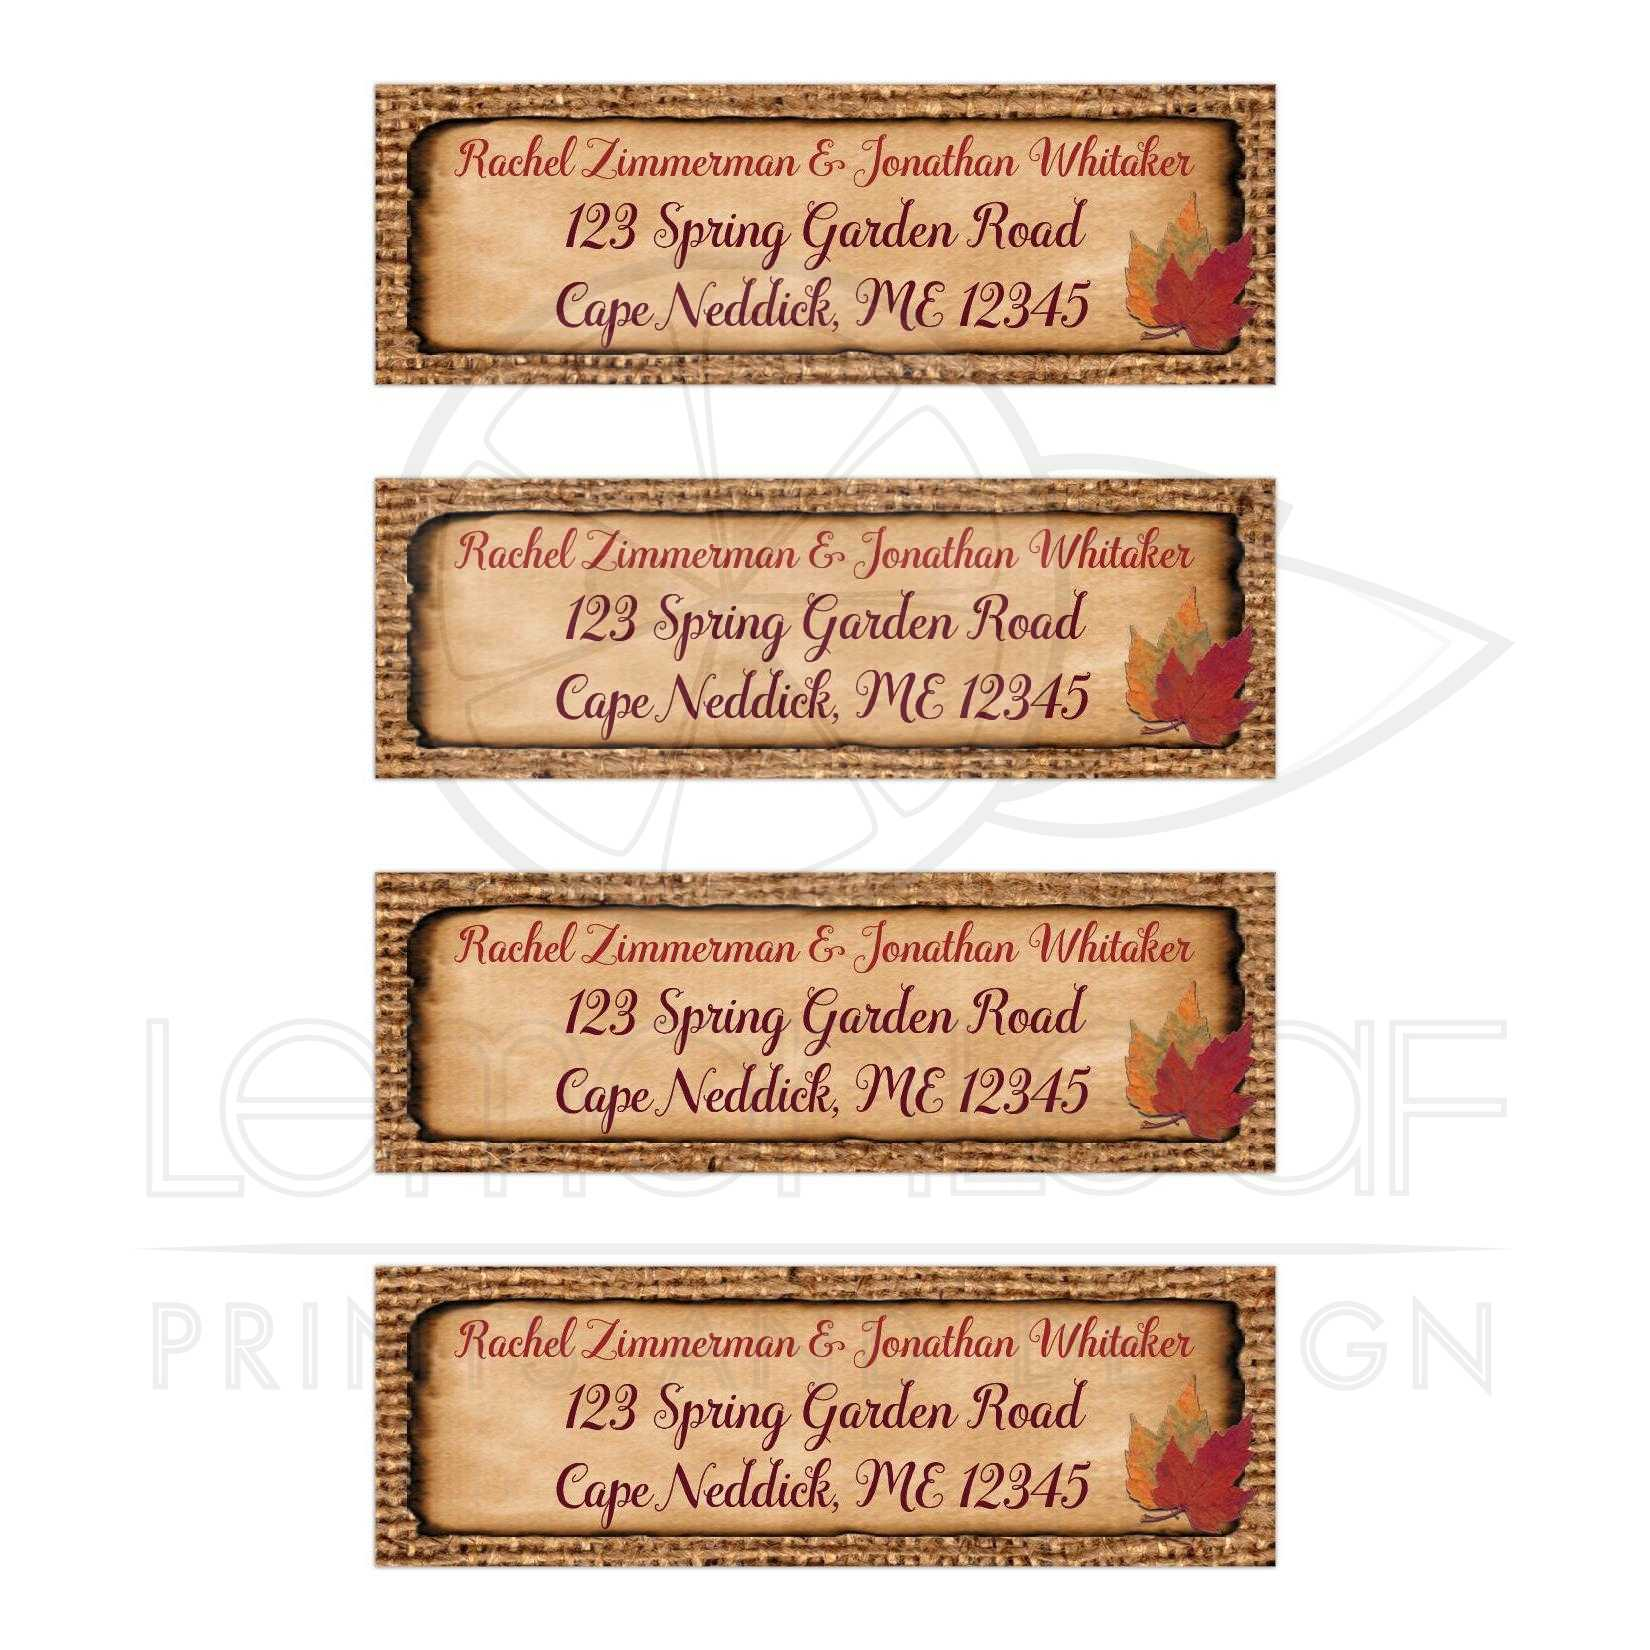 Personalized Return Address Mailing Labels With Burlap Faux Aged And Burnt Edge Paper